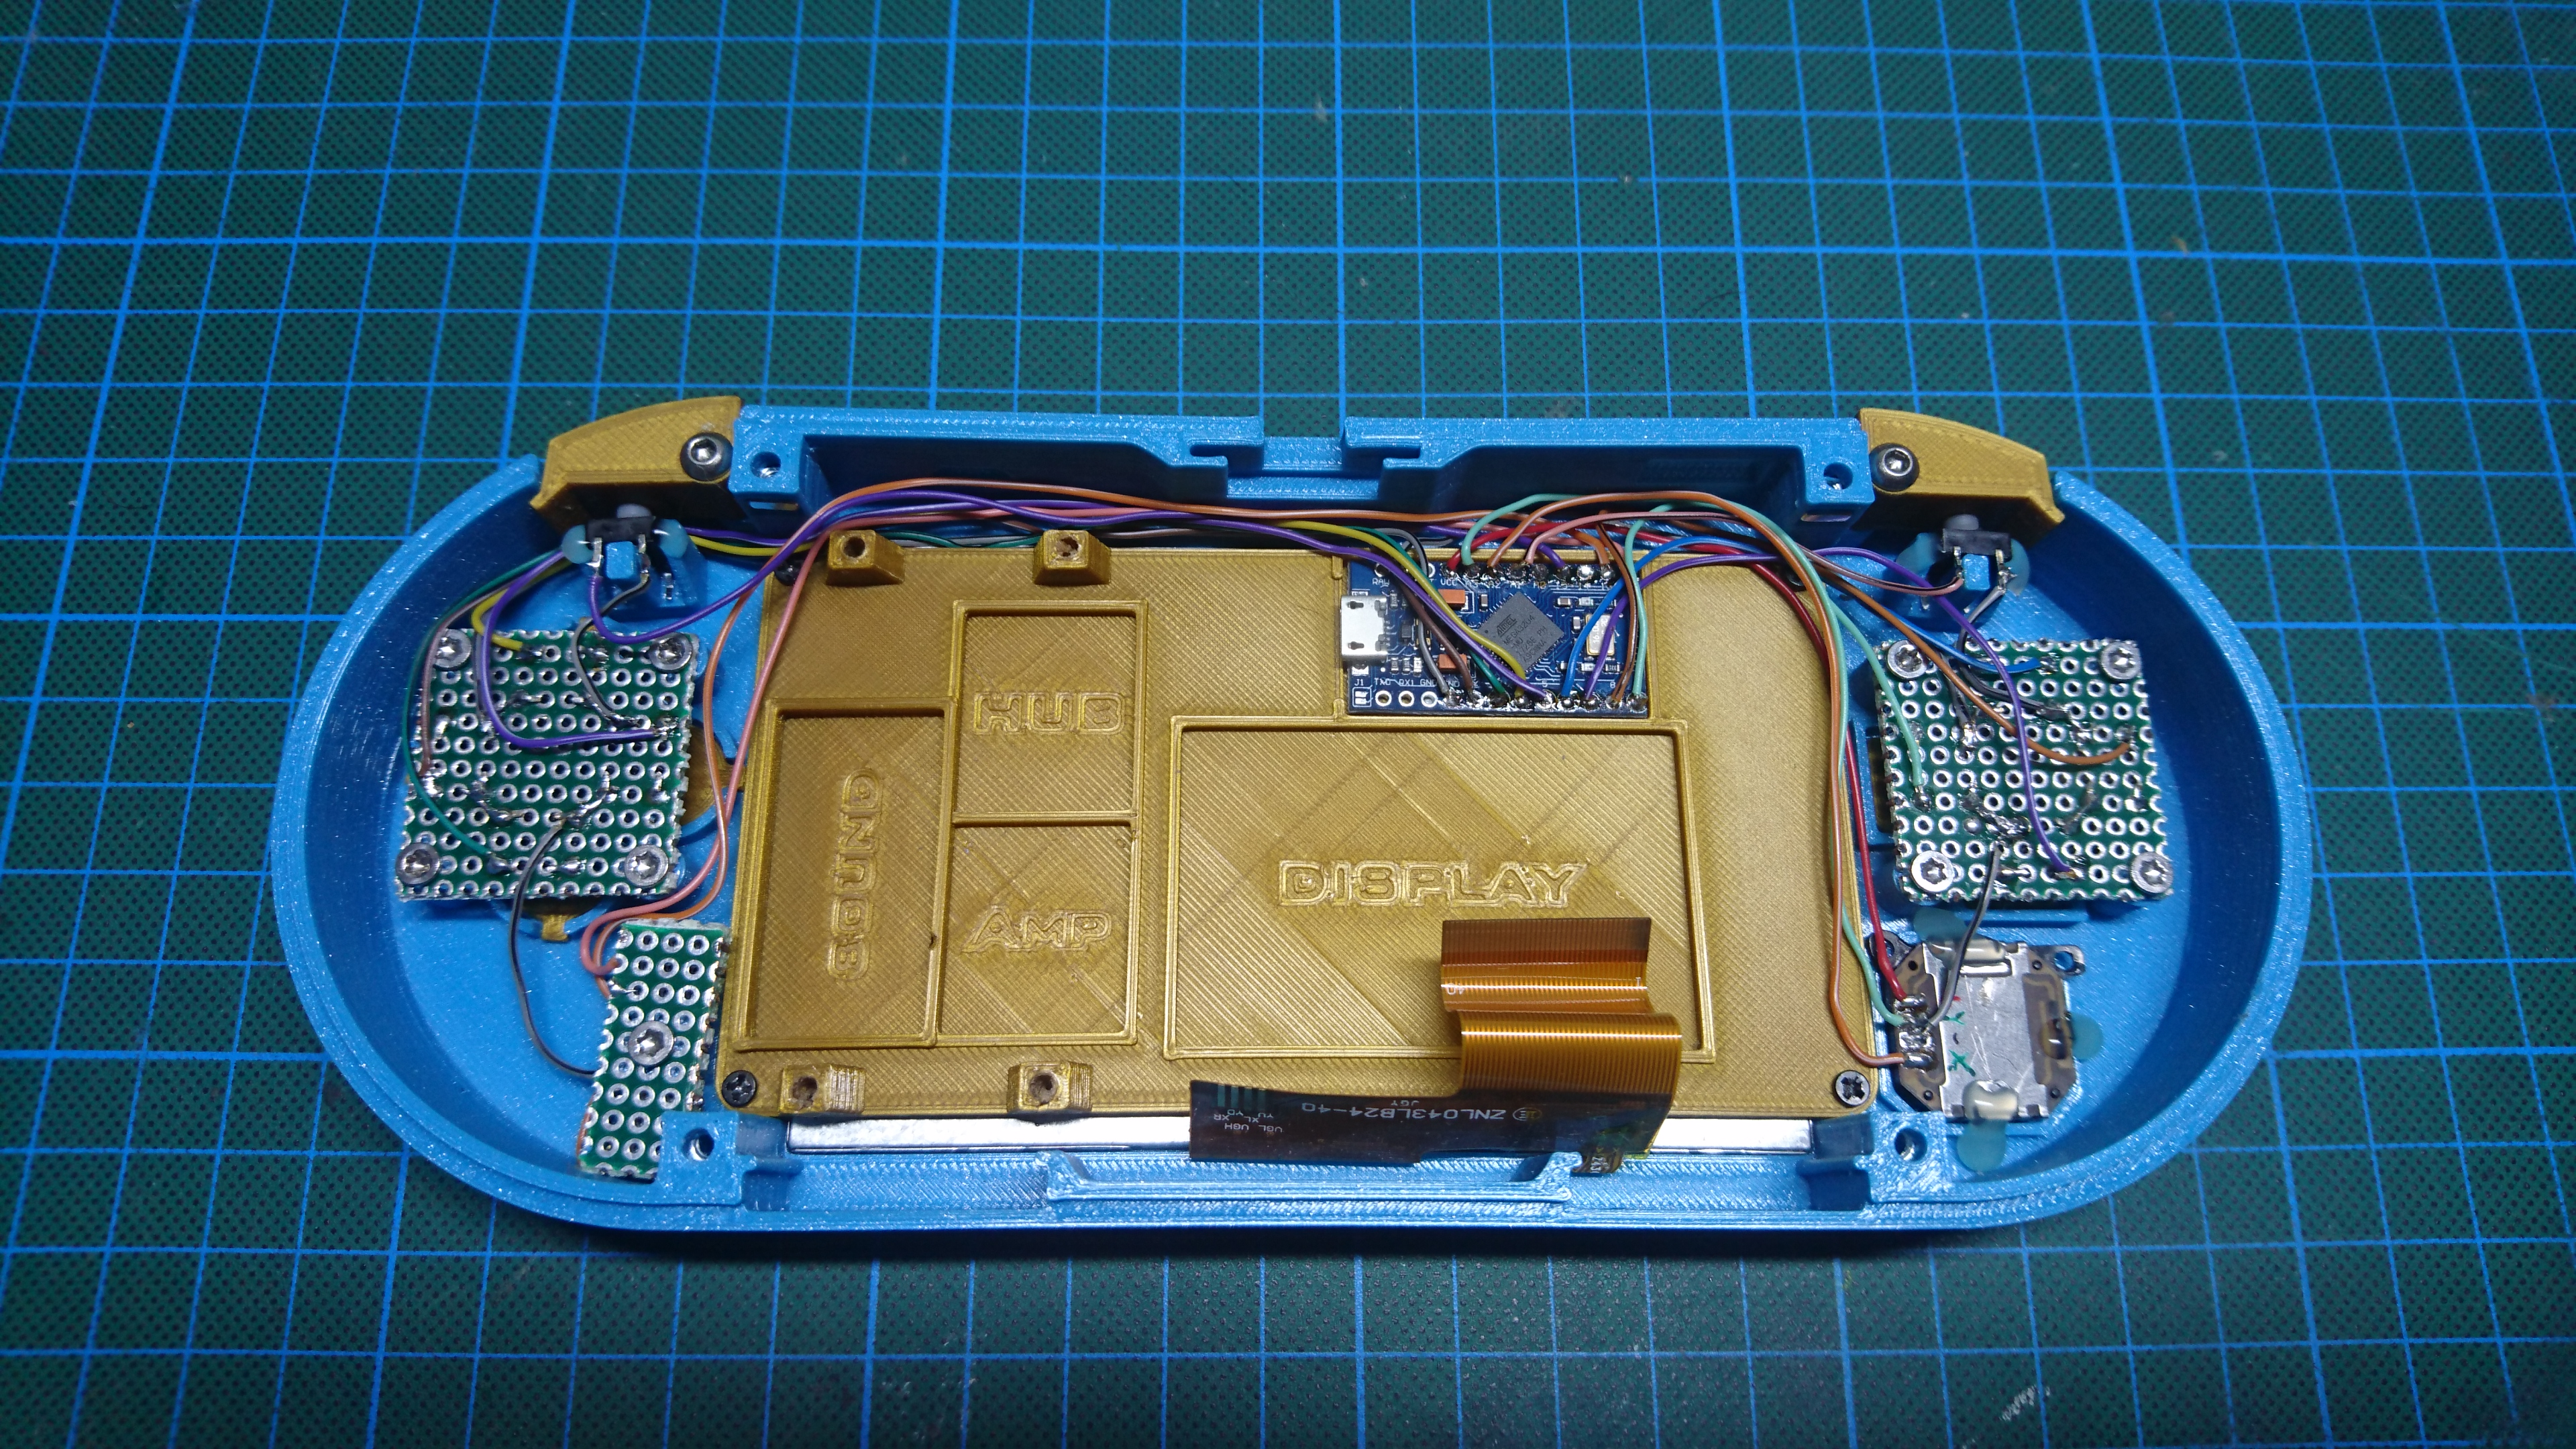 Picture of Wiring: the Arduino Micro Pro